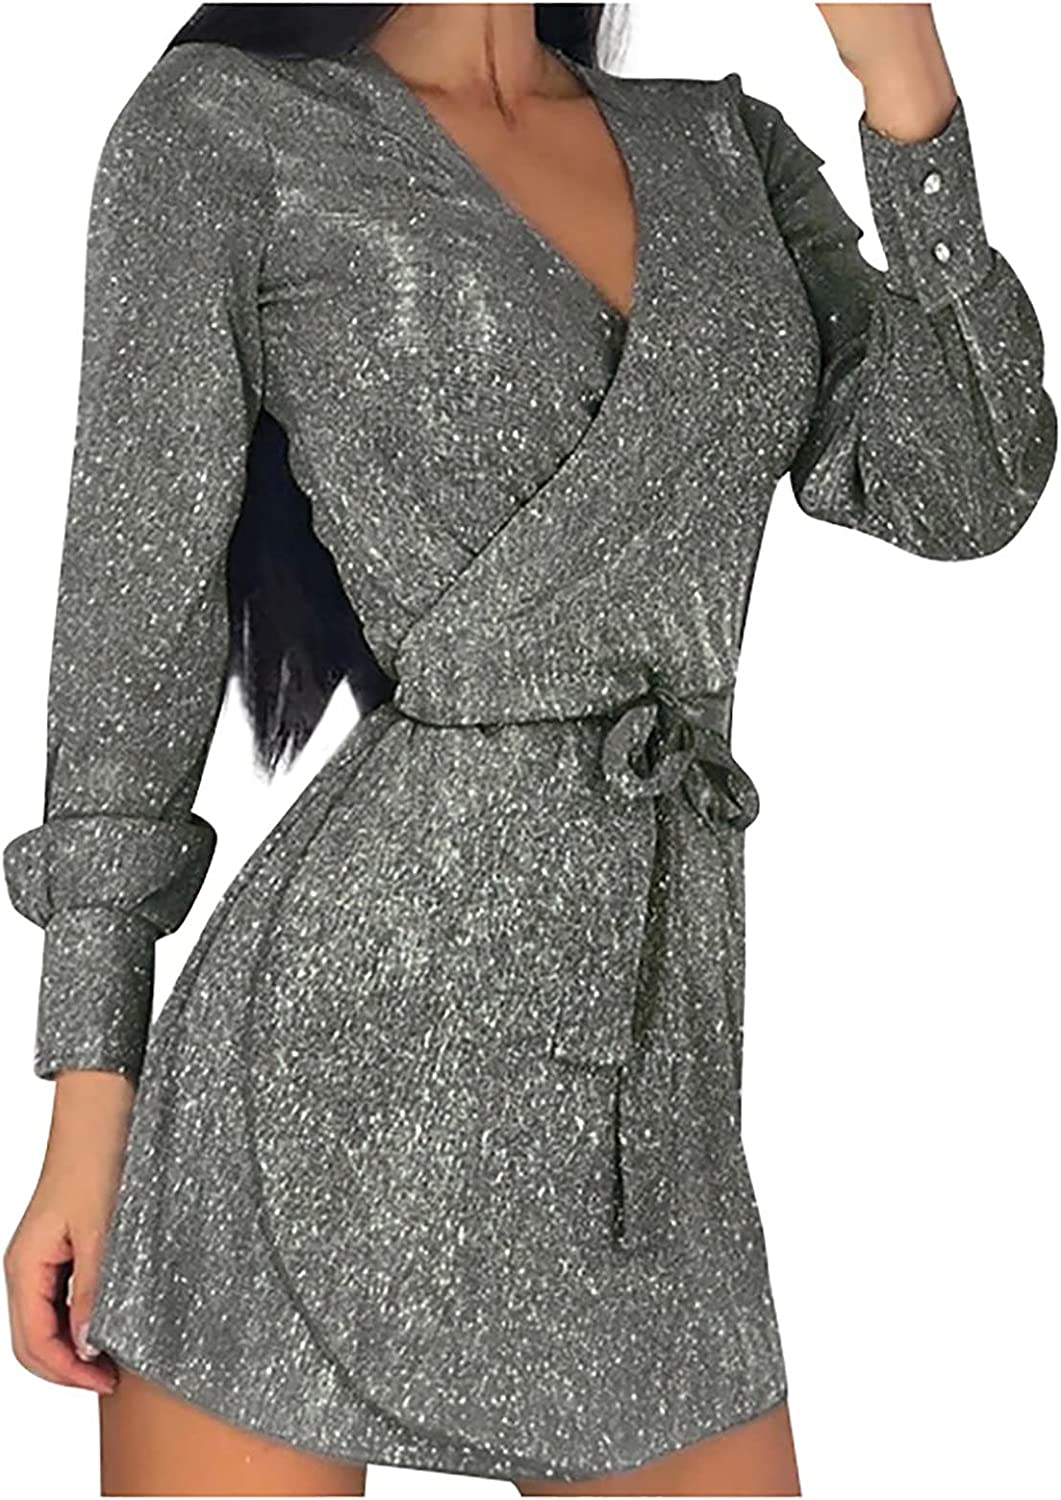 Womens Sexy Party Club Night Out Evening Mini Dresses Clubwear Fashion Sequin Sparkling Long Sleeve Bandage Dress